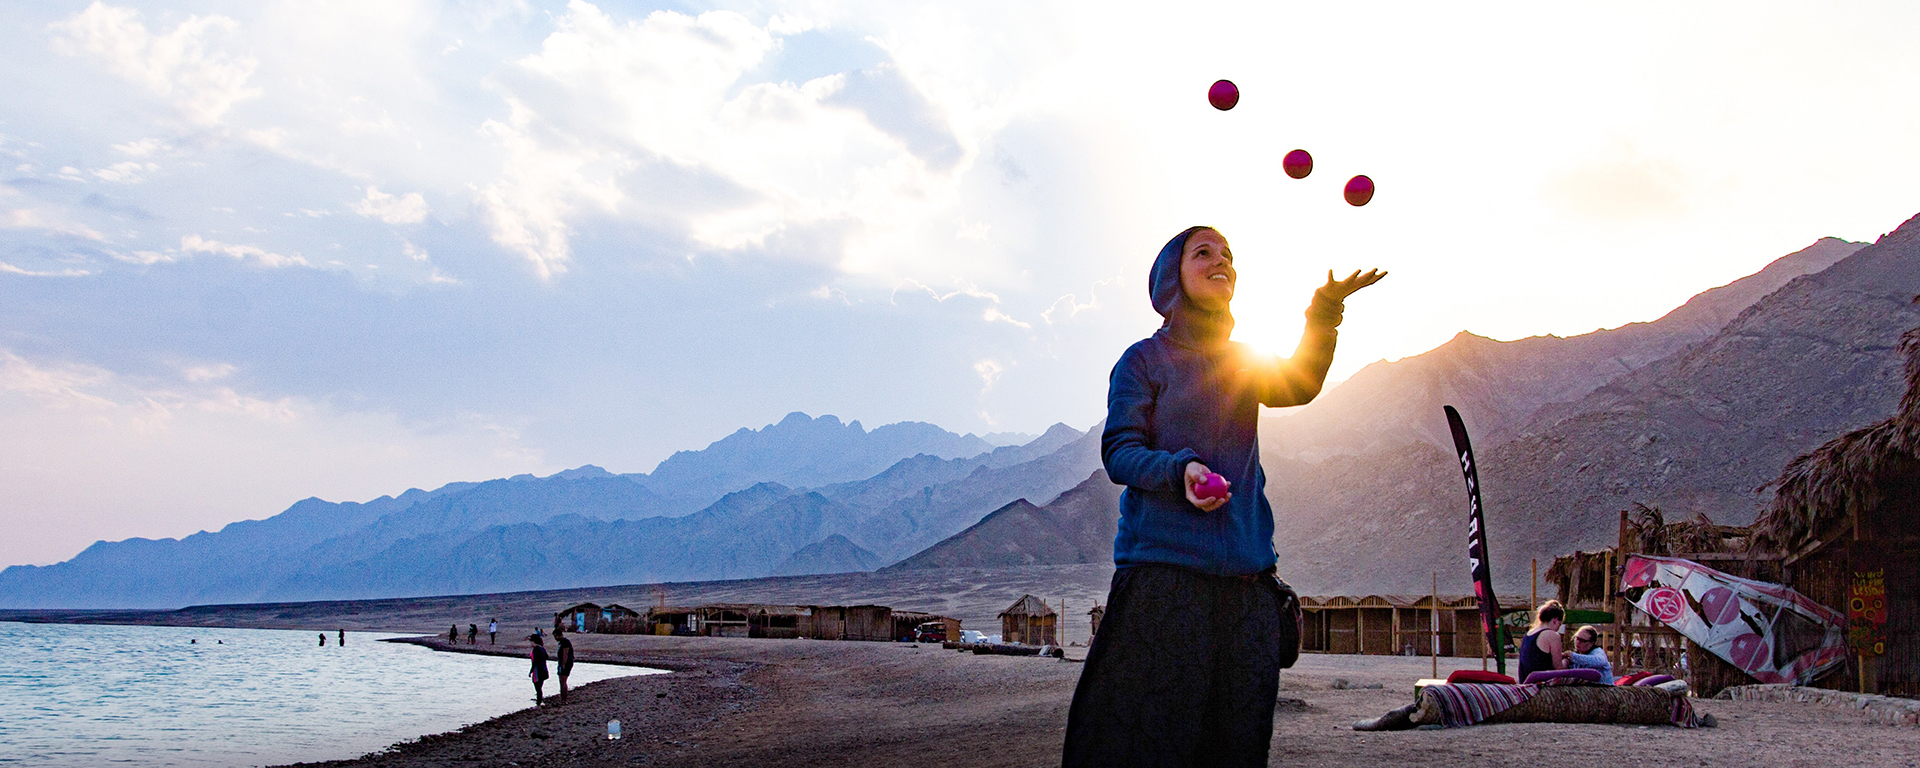 A girl if juggling on a beach wearing a hoodie